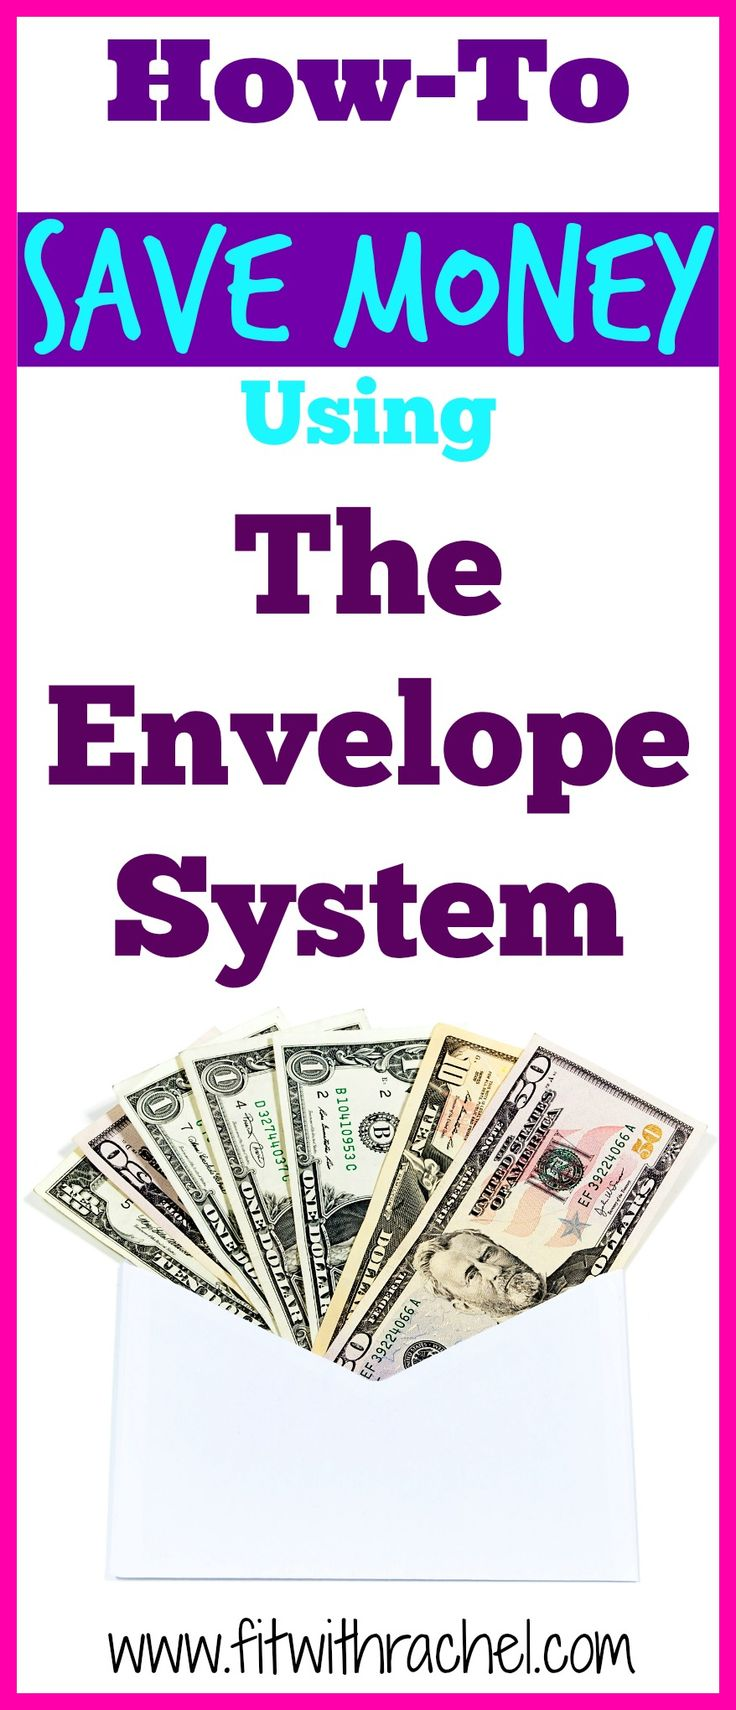 Super easy way to slash hundreds of dollars every month from your budget!